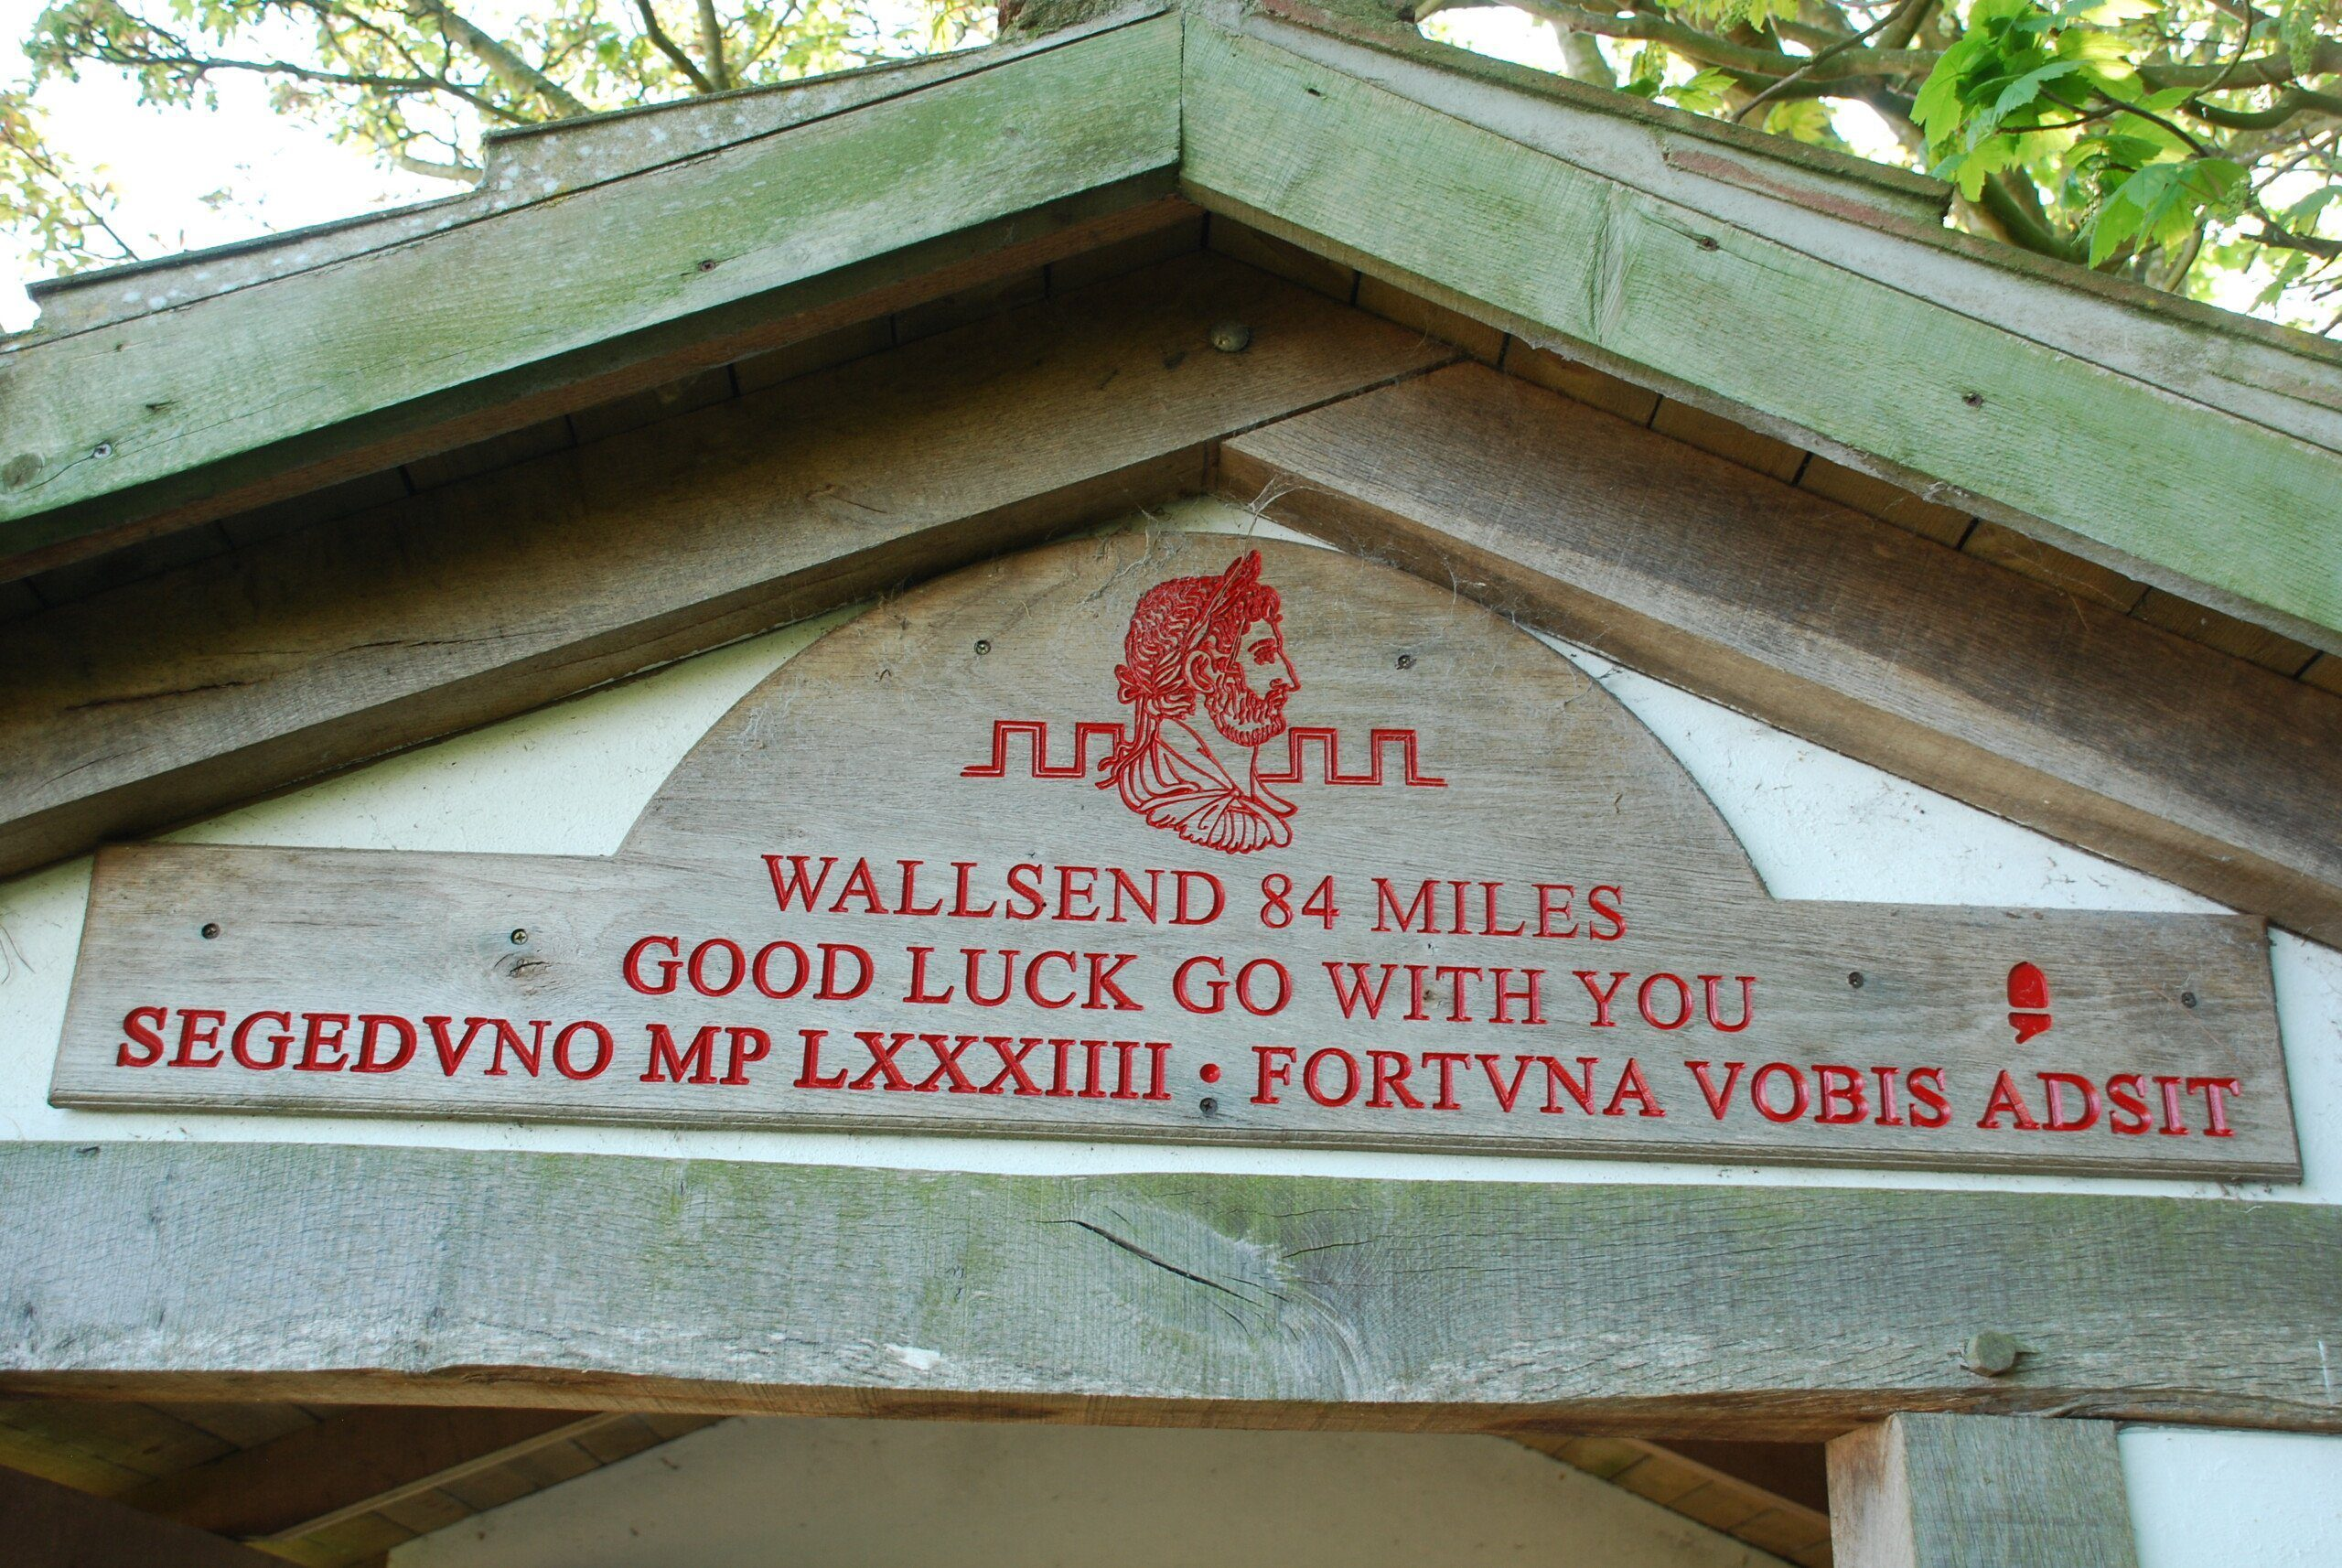 Close-up of sign at Bowness-on-Solway, written in Latin and English, wishing trekkers 'Good luck' at the start of their 84 mile trek across England along the Hadrian's Wall Path.